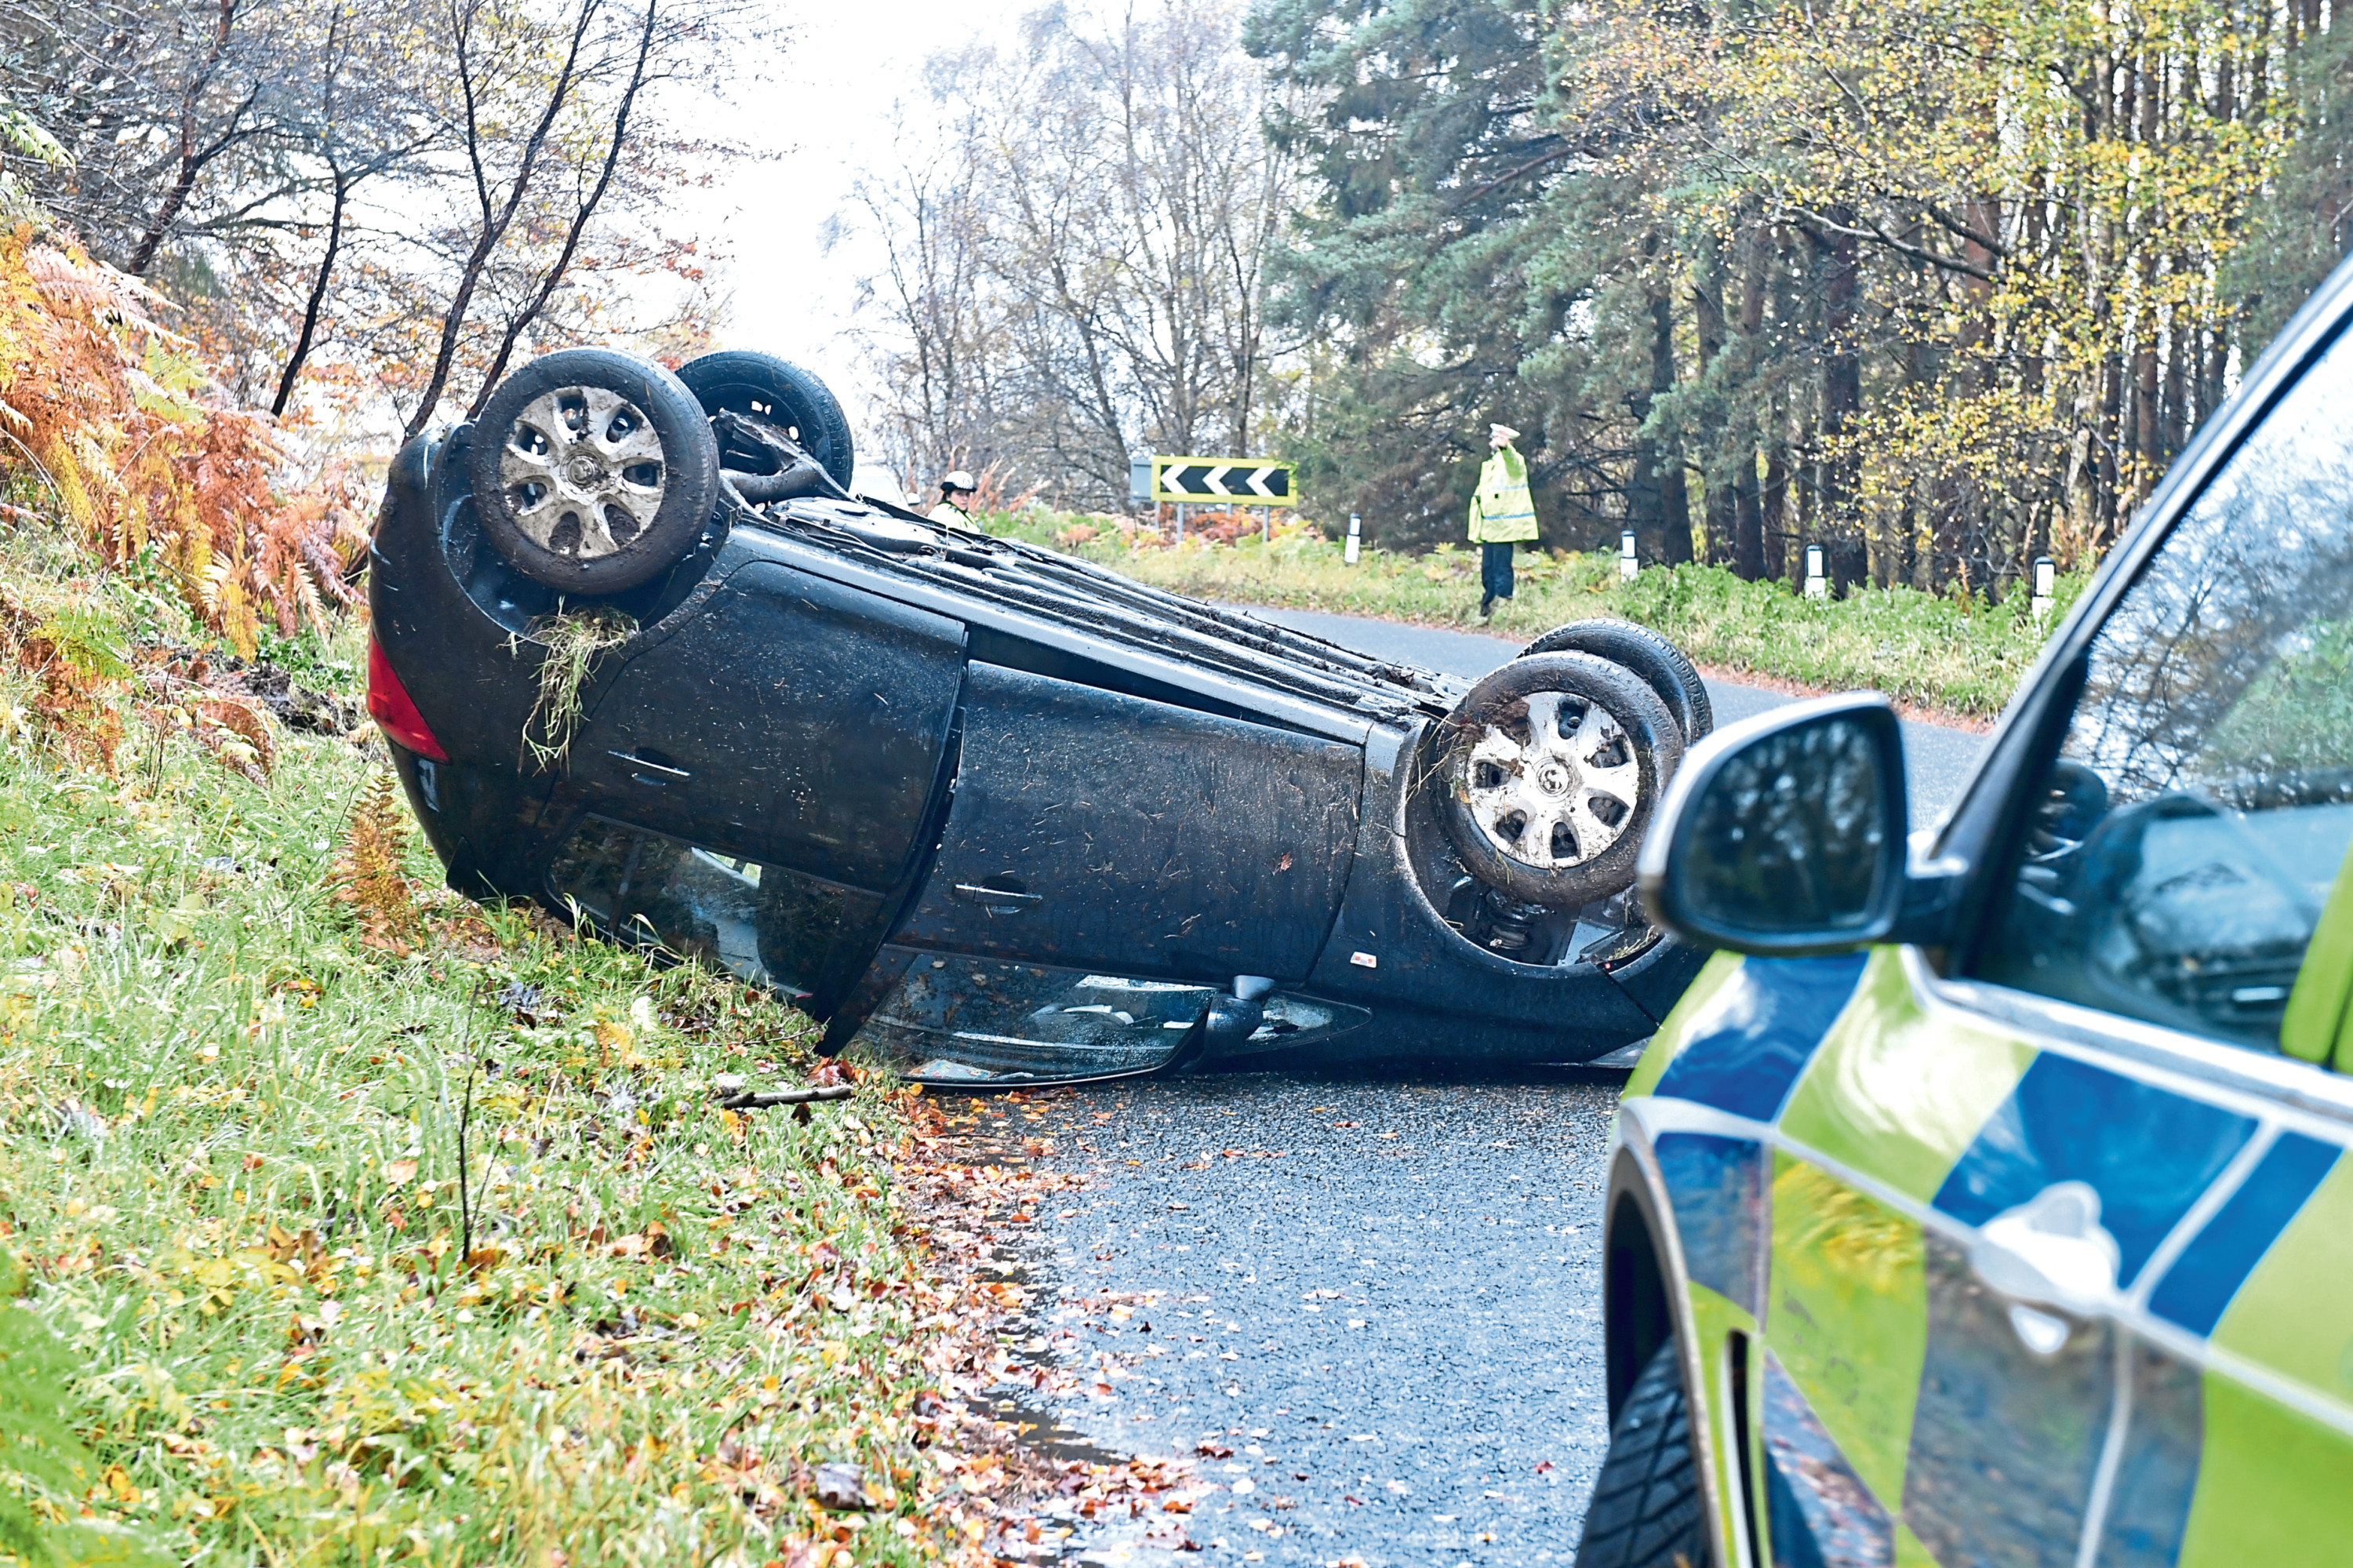 The car on its roof on the B993 between Kemnay and Inverurie